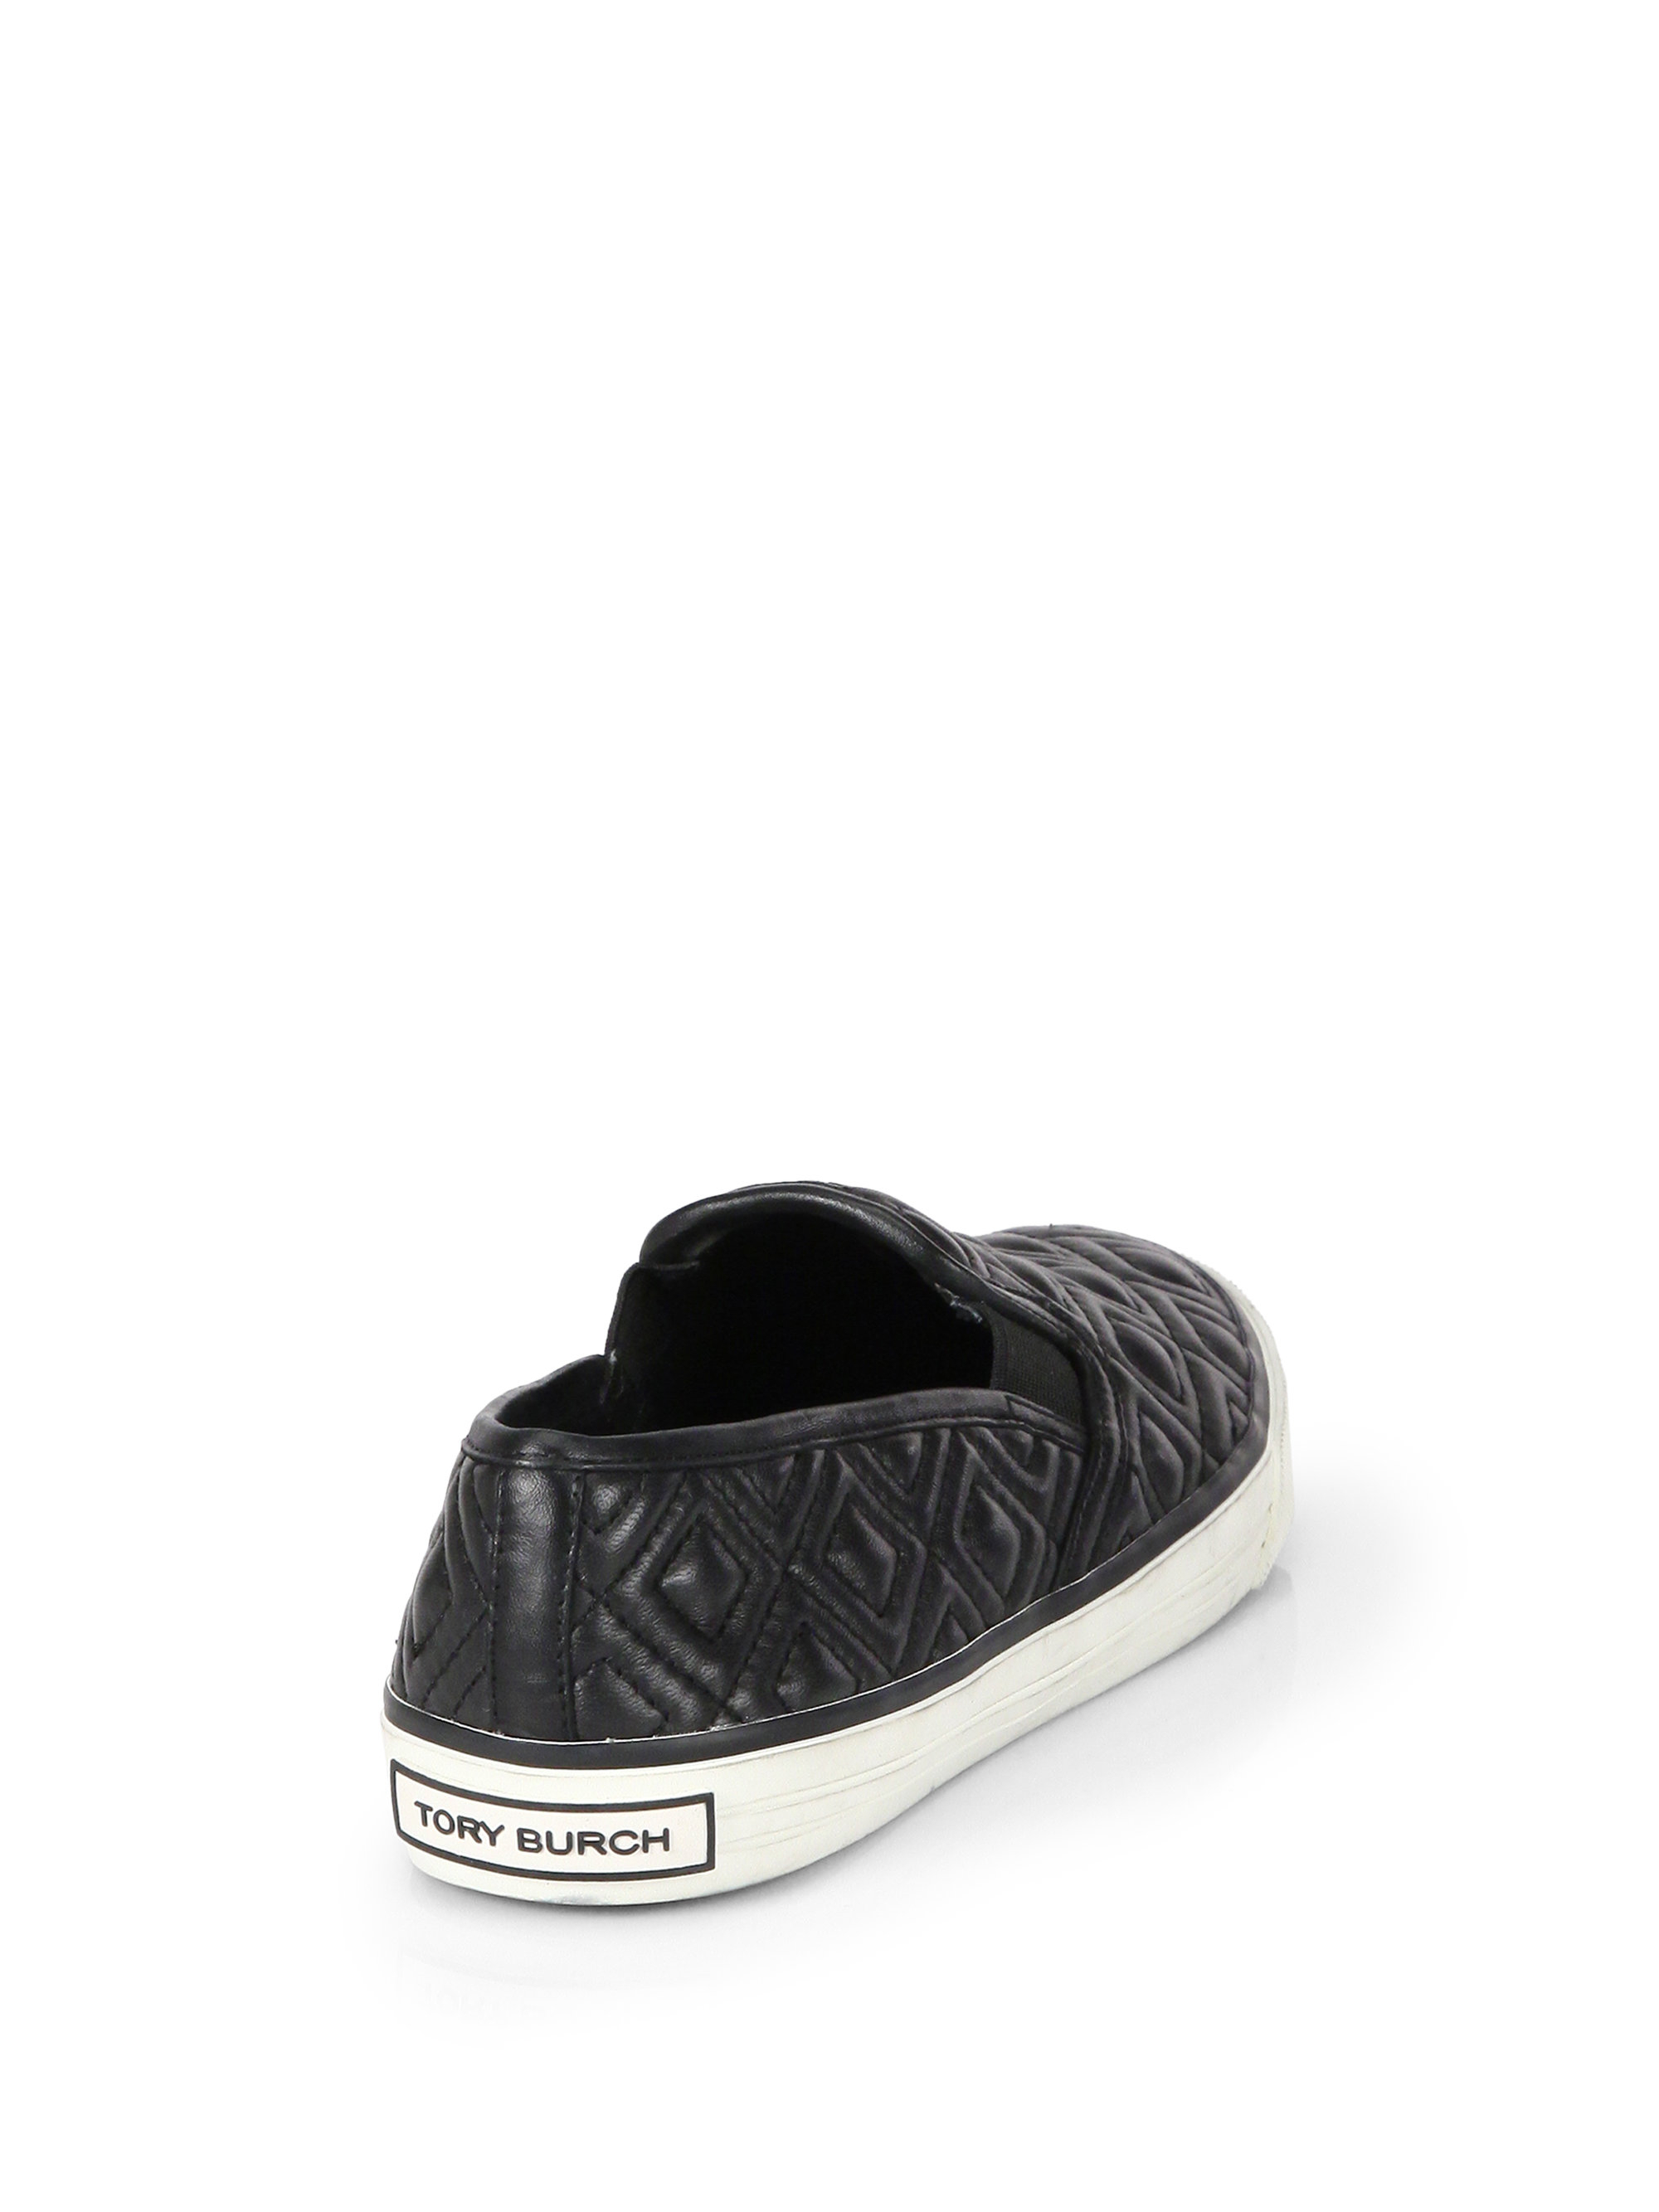 99967d27f99e Lyst - Tory Burch Jesse Quilted Leather Sneakers in Black